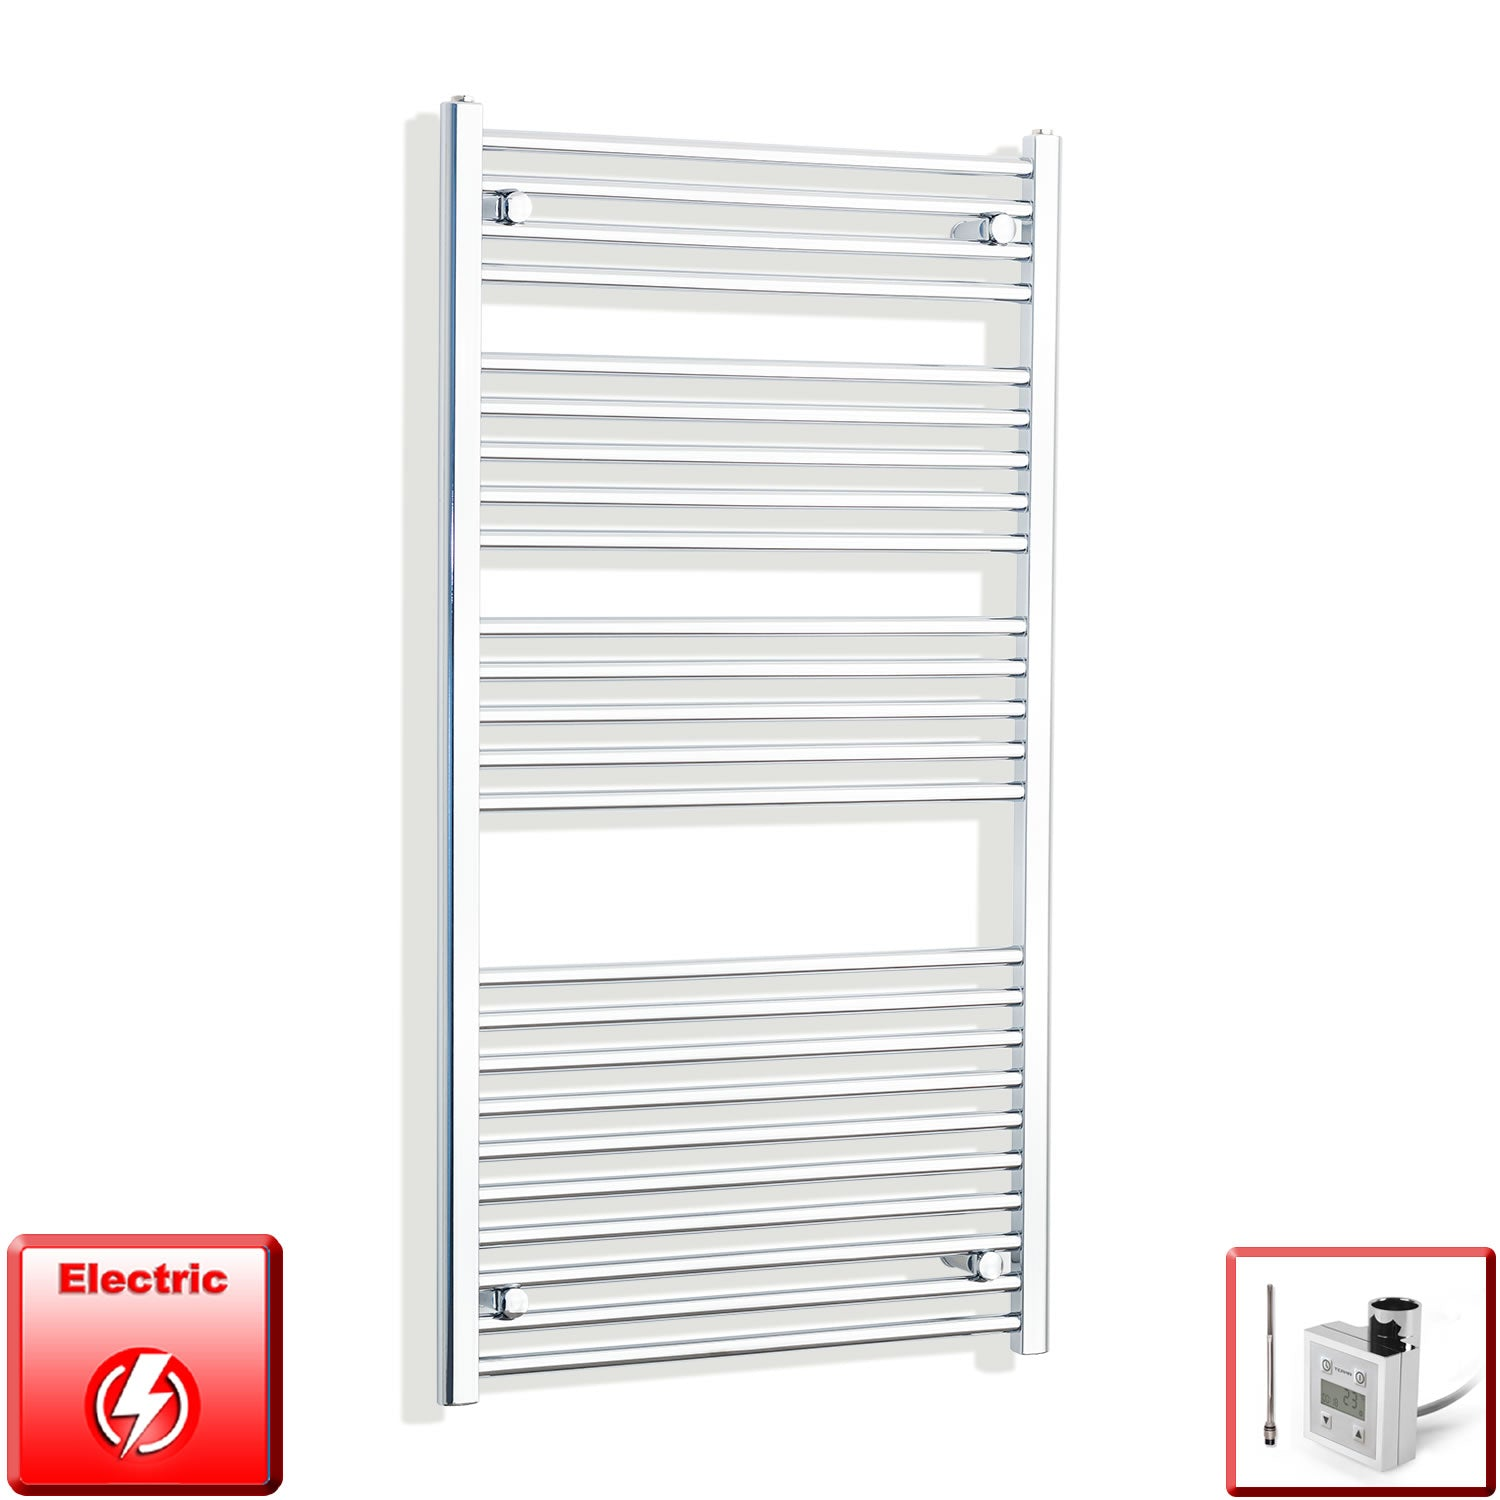 700mm Wide 1300mm High Flat Or Curved Chrome Pre-Filled Electric Heated Towel Rail Radiator HTR,KTX-3 Thermostatic Element / Straight